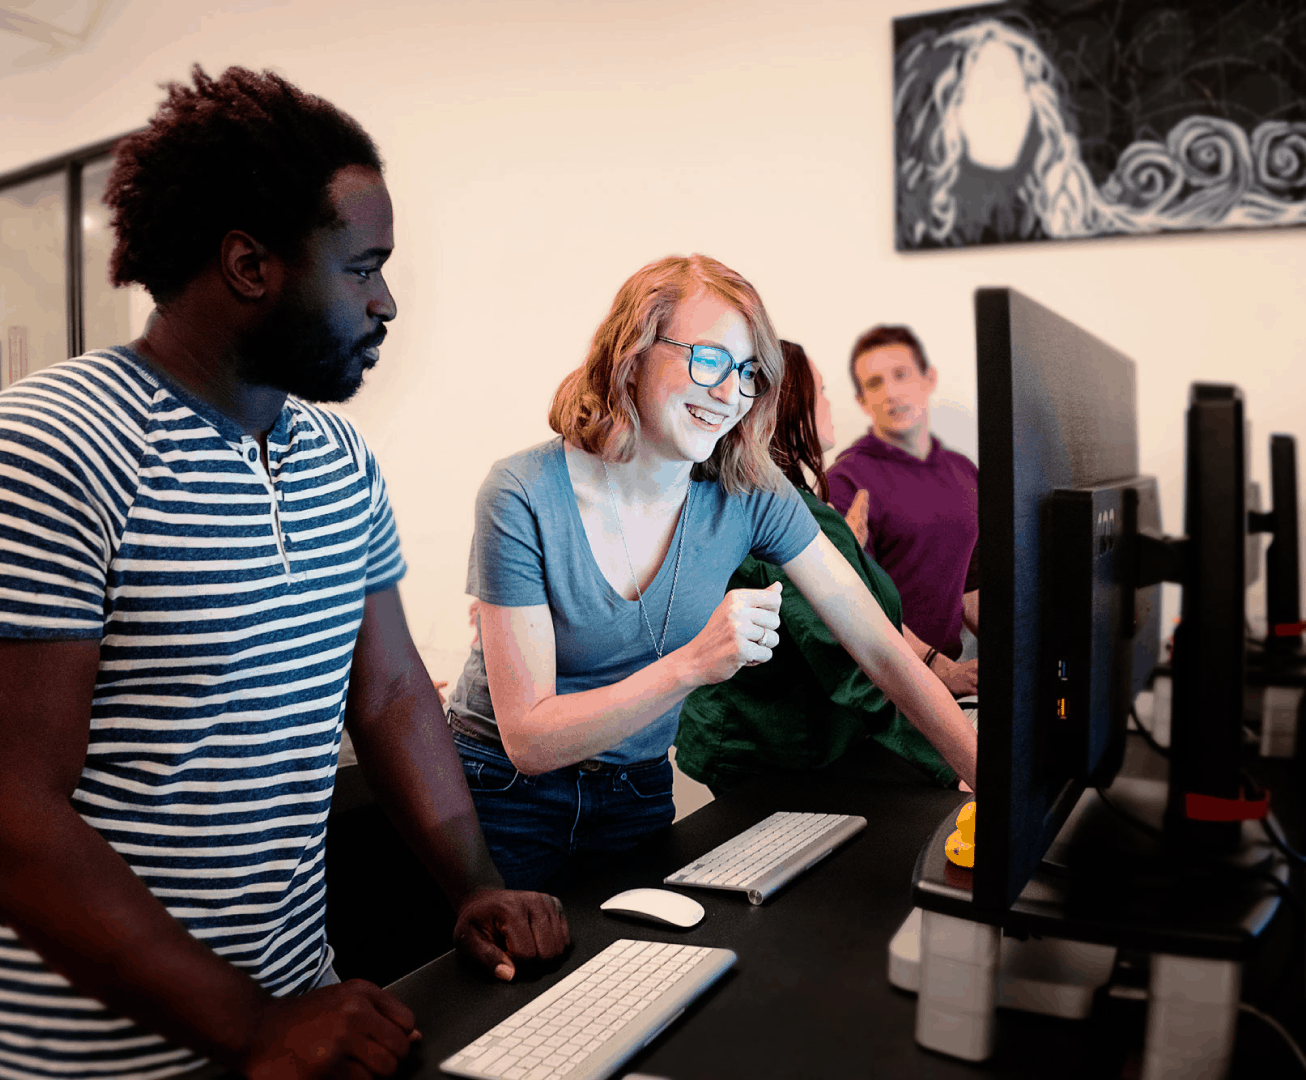 Diverse Group Of Coders At Computers